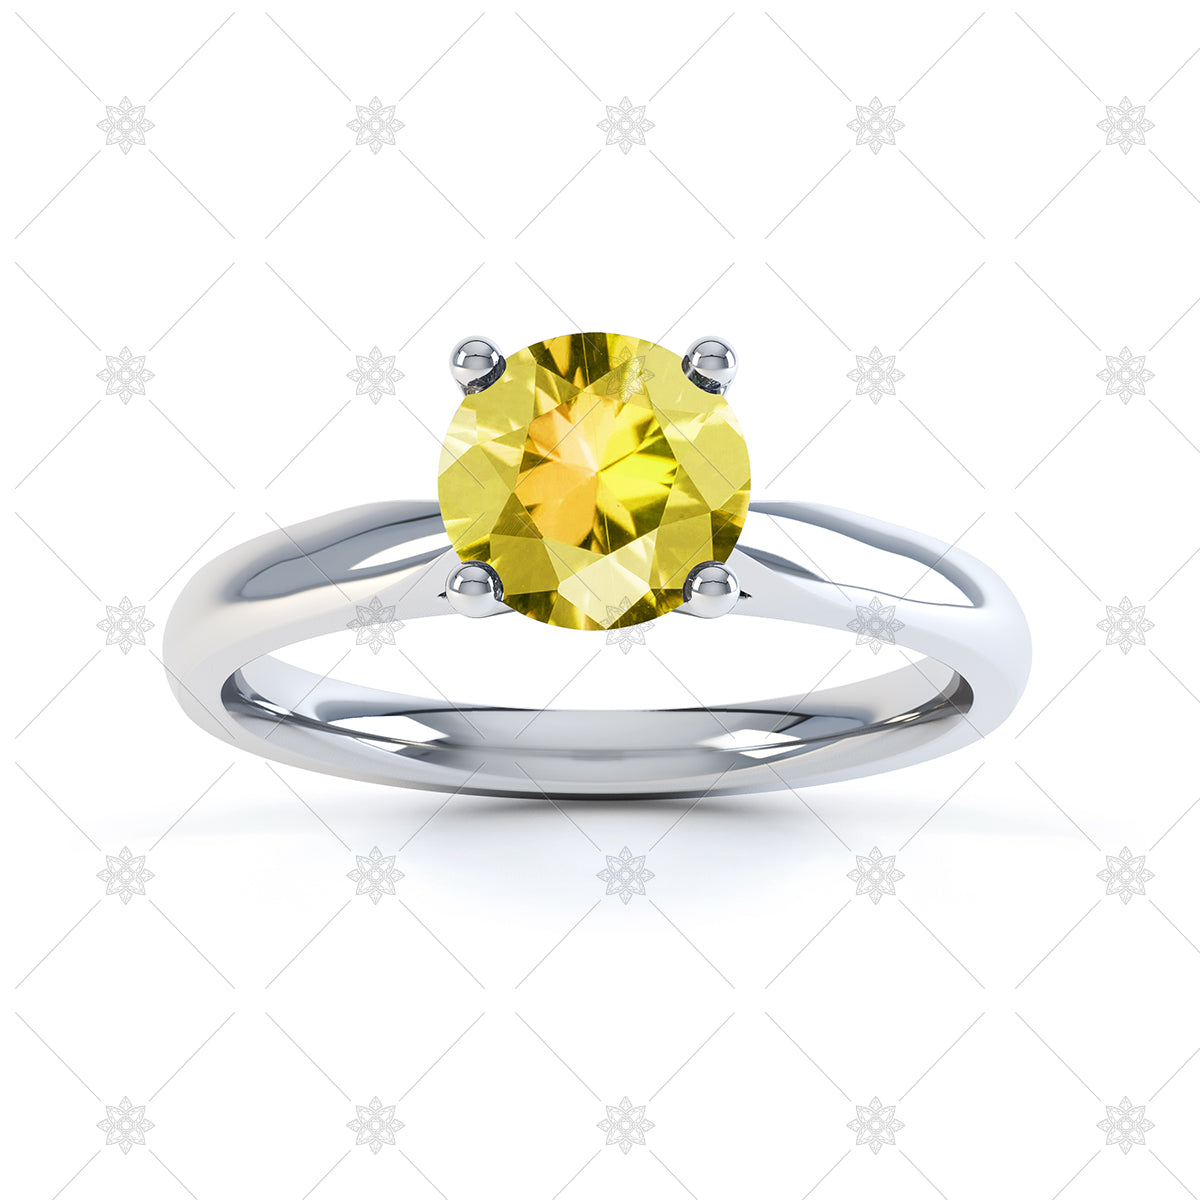 Lemon Quartz gemstone ring image